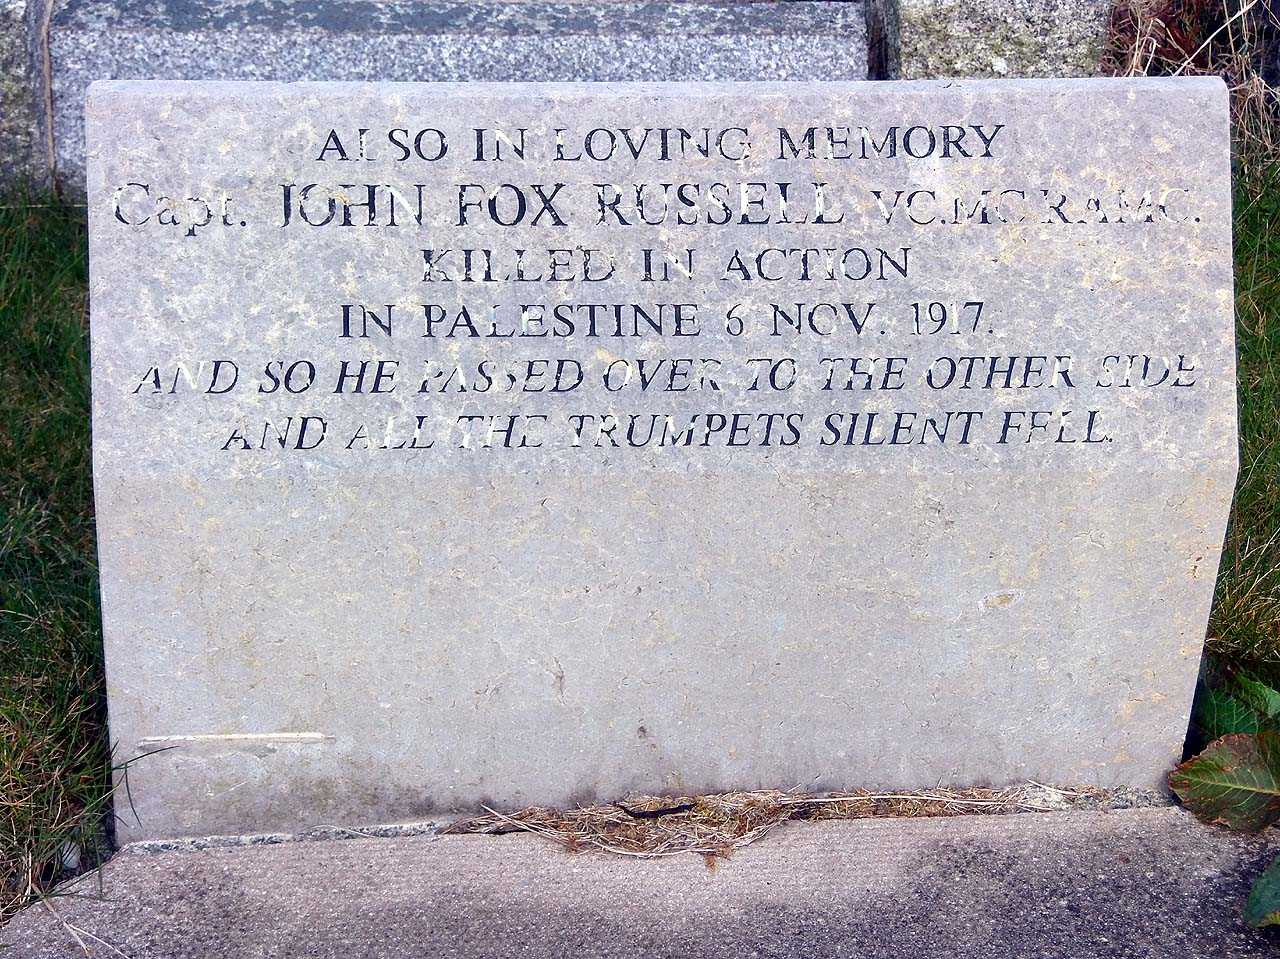 John Fox Russell V.C., M.C., Captain R.A.M.C. Stone on his brothers grave in St Seiriols Churchyard Holyhead